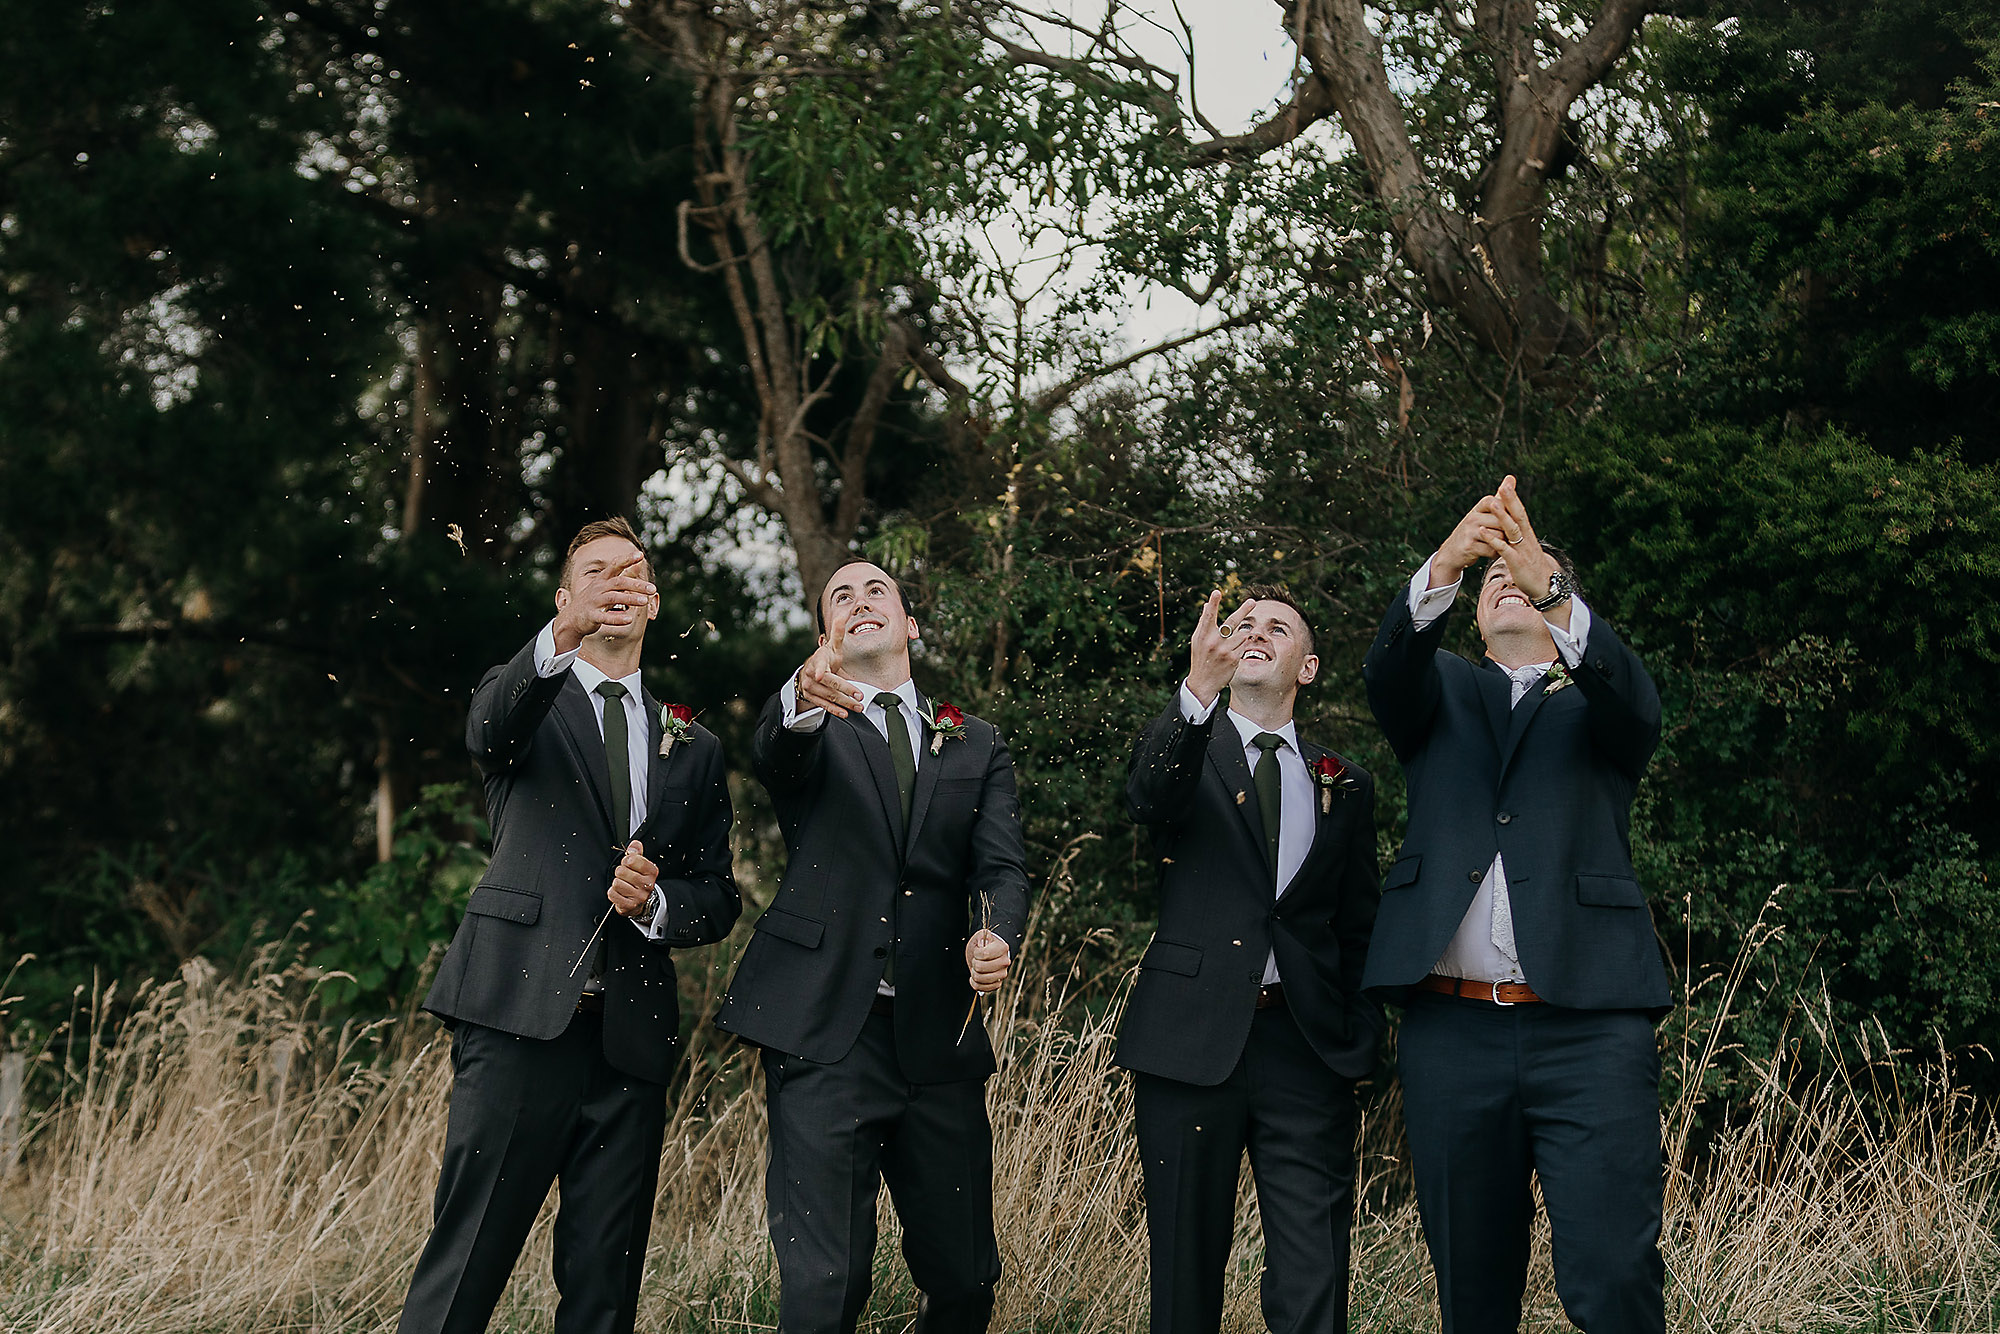 groom and groomsmen having fun with dry grass akaroa wedding christchurch wedding photographer